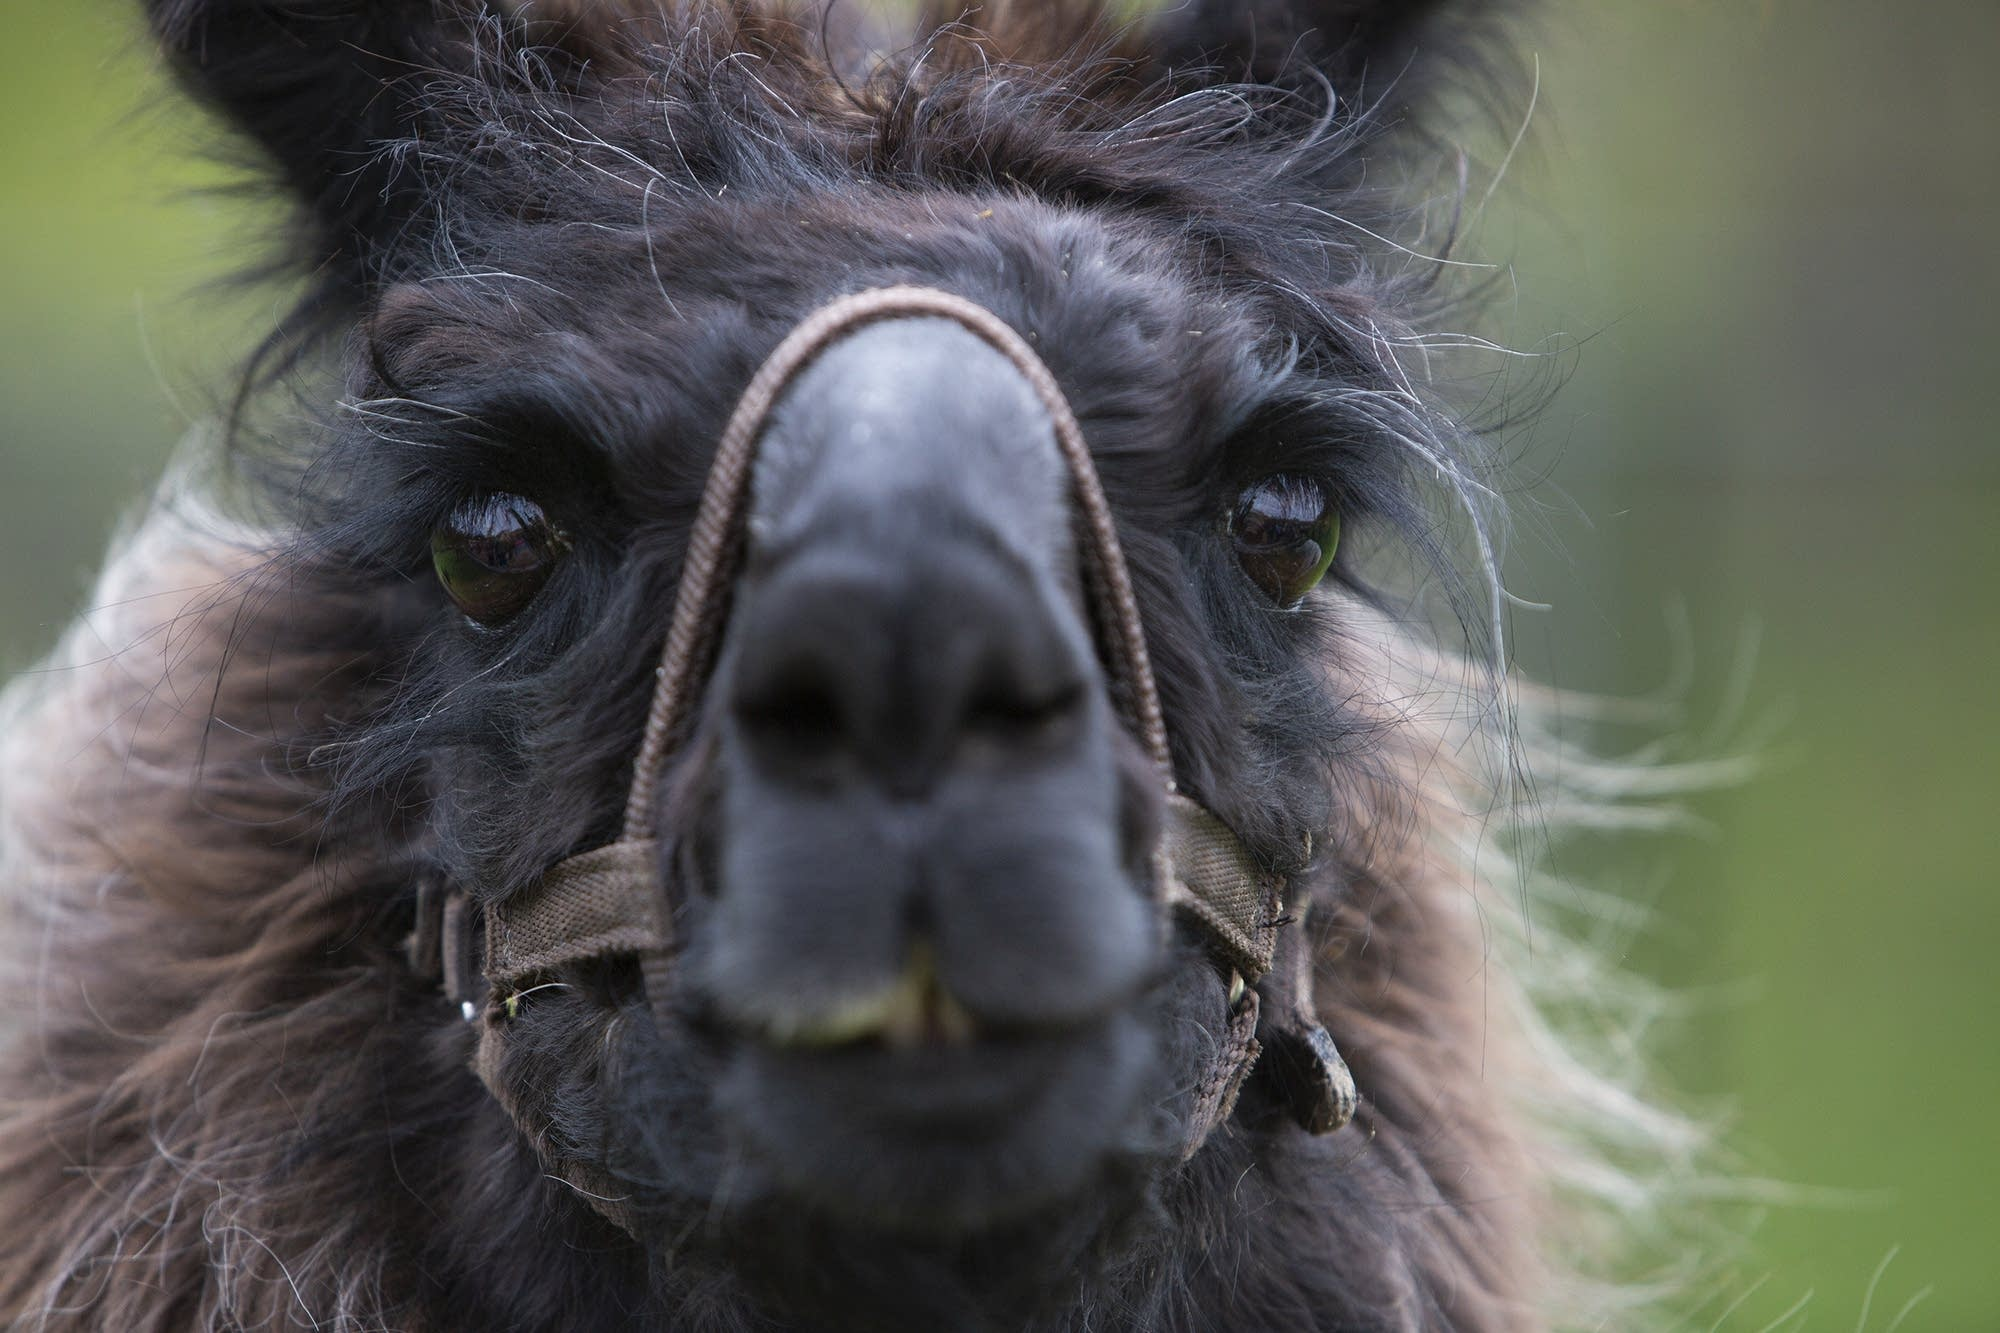 Llamas are related to alpacas but are larger and have longer faces.